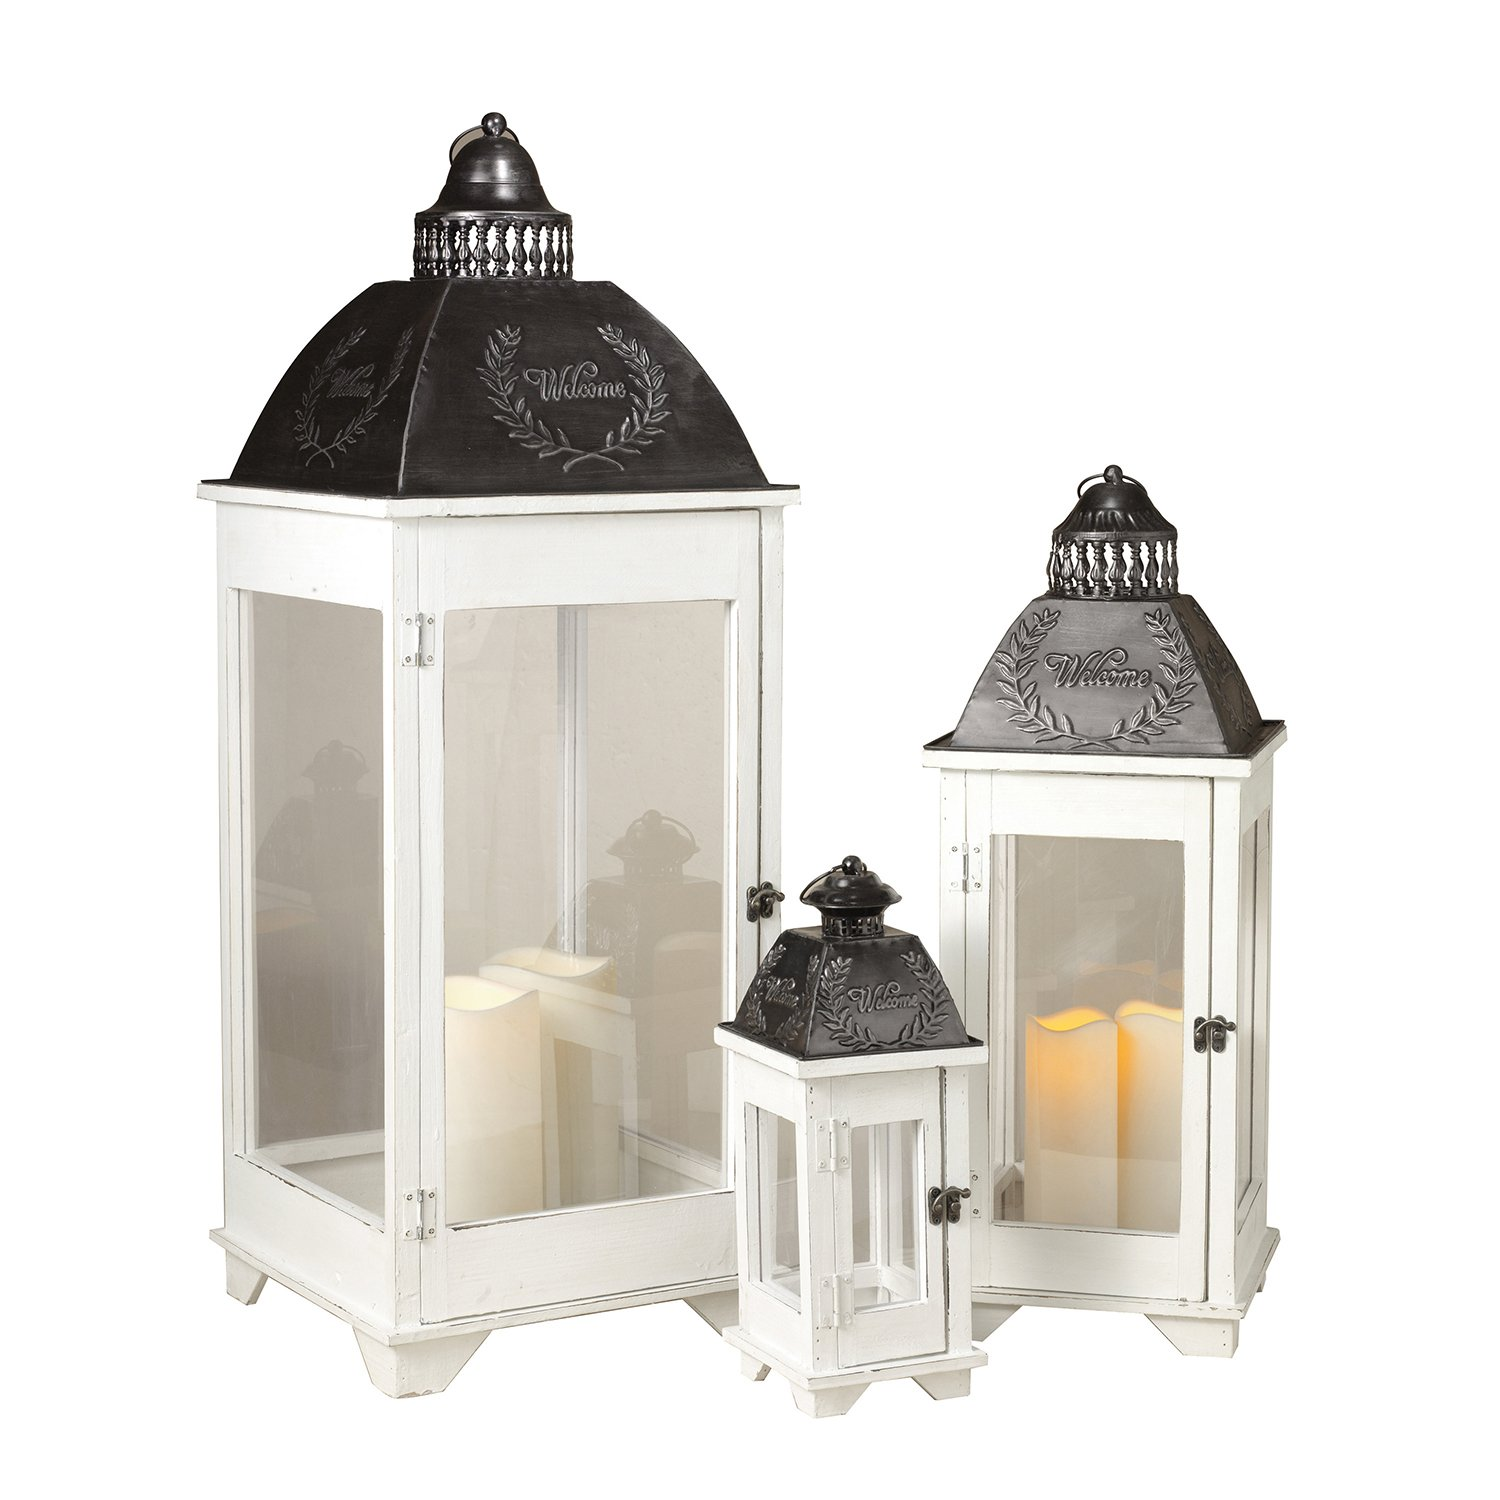 Large Tall White Rustic Metal and Wood Nesting Candle Lanterns Set of 3 Decor